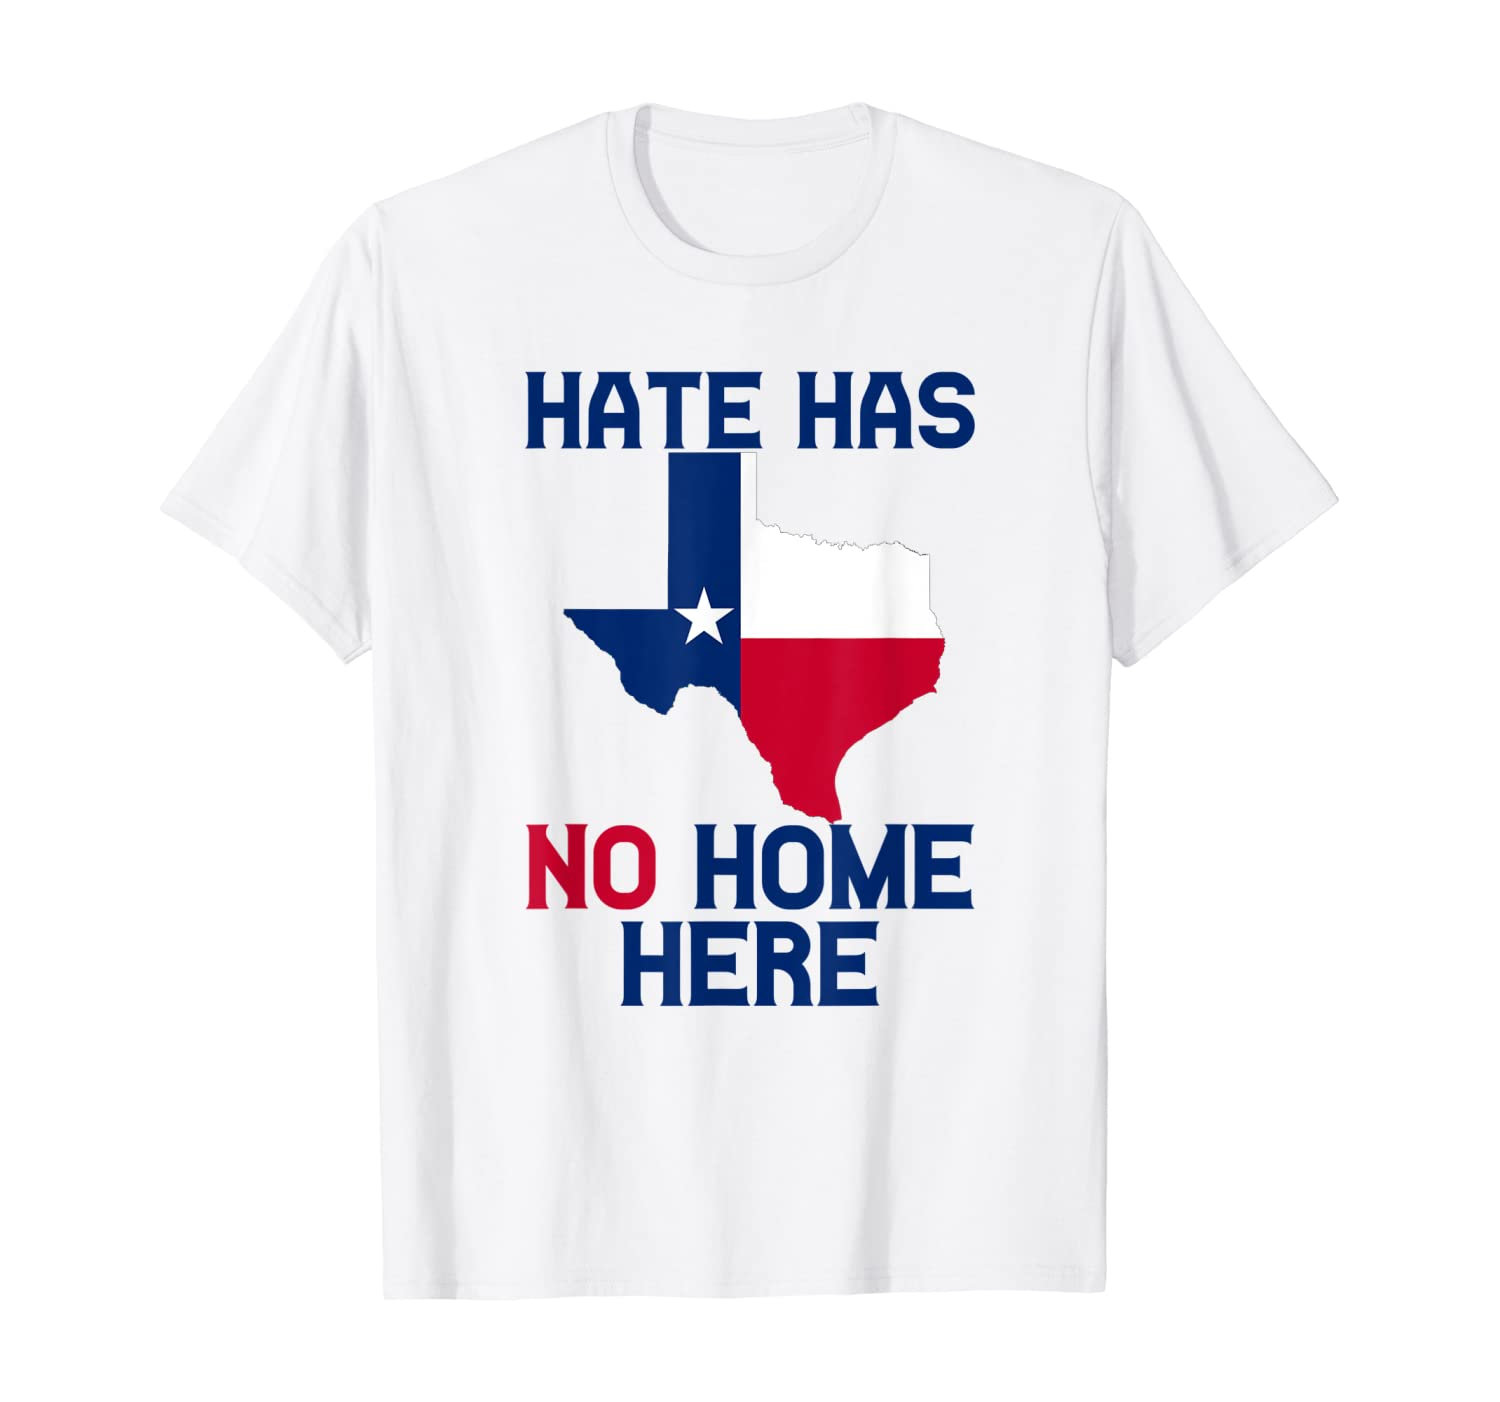 Hate Has No Home Here Texas Anti Racism Anti Hate T-Shirt